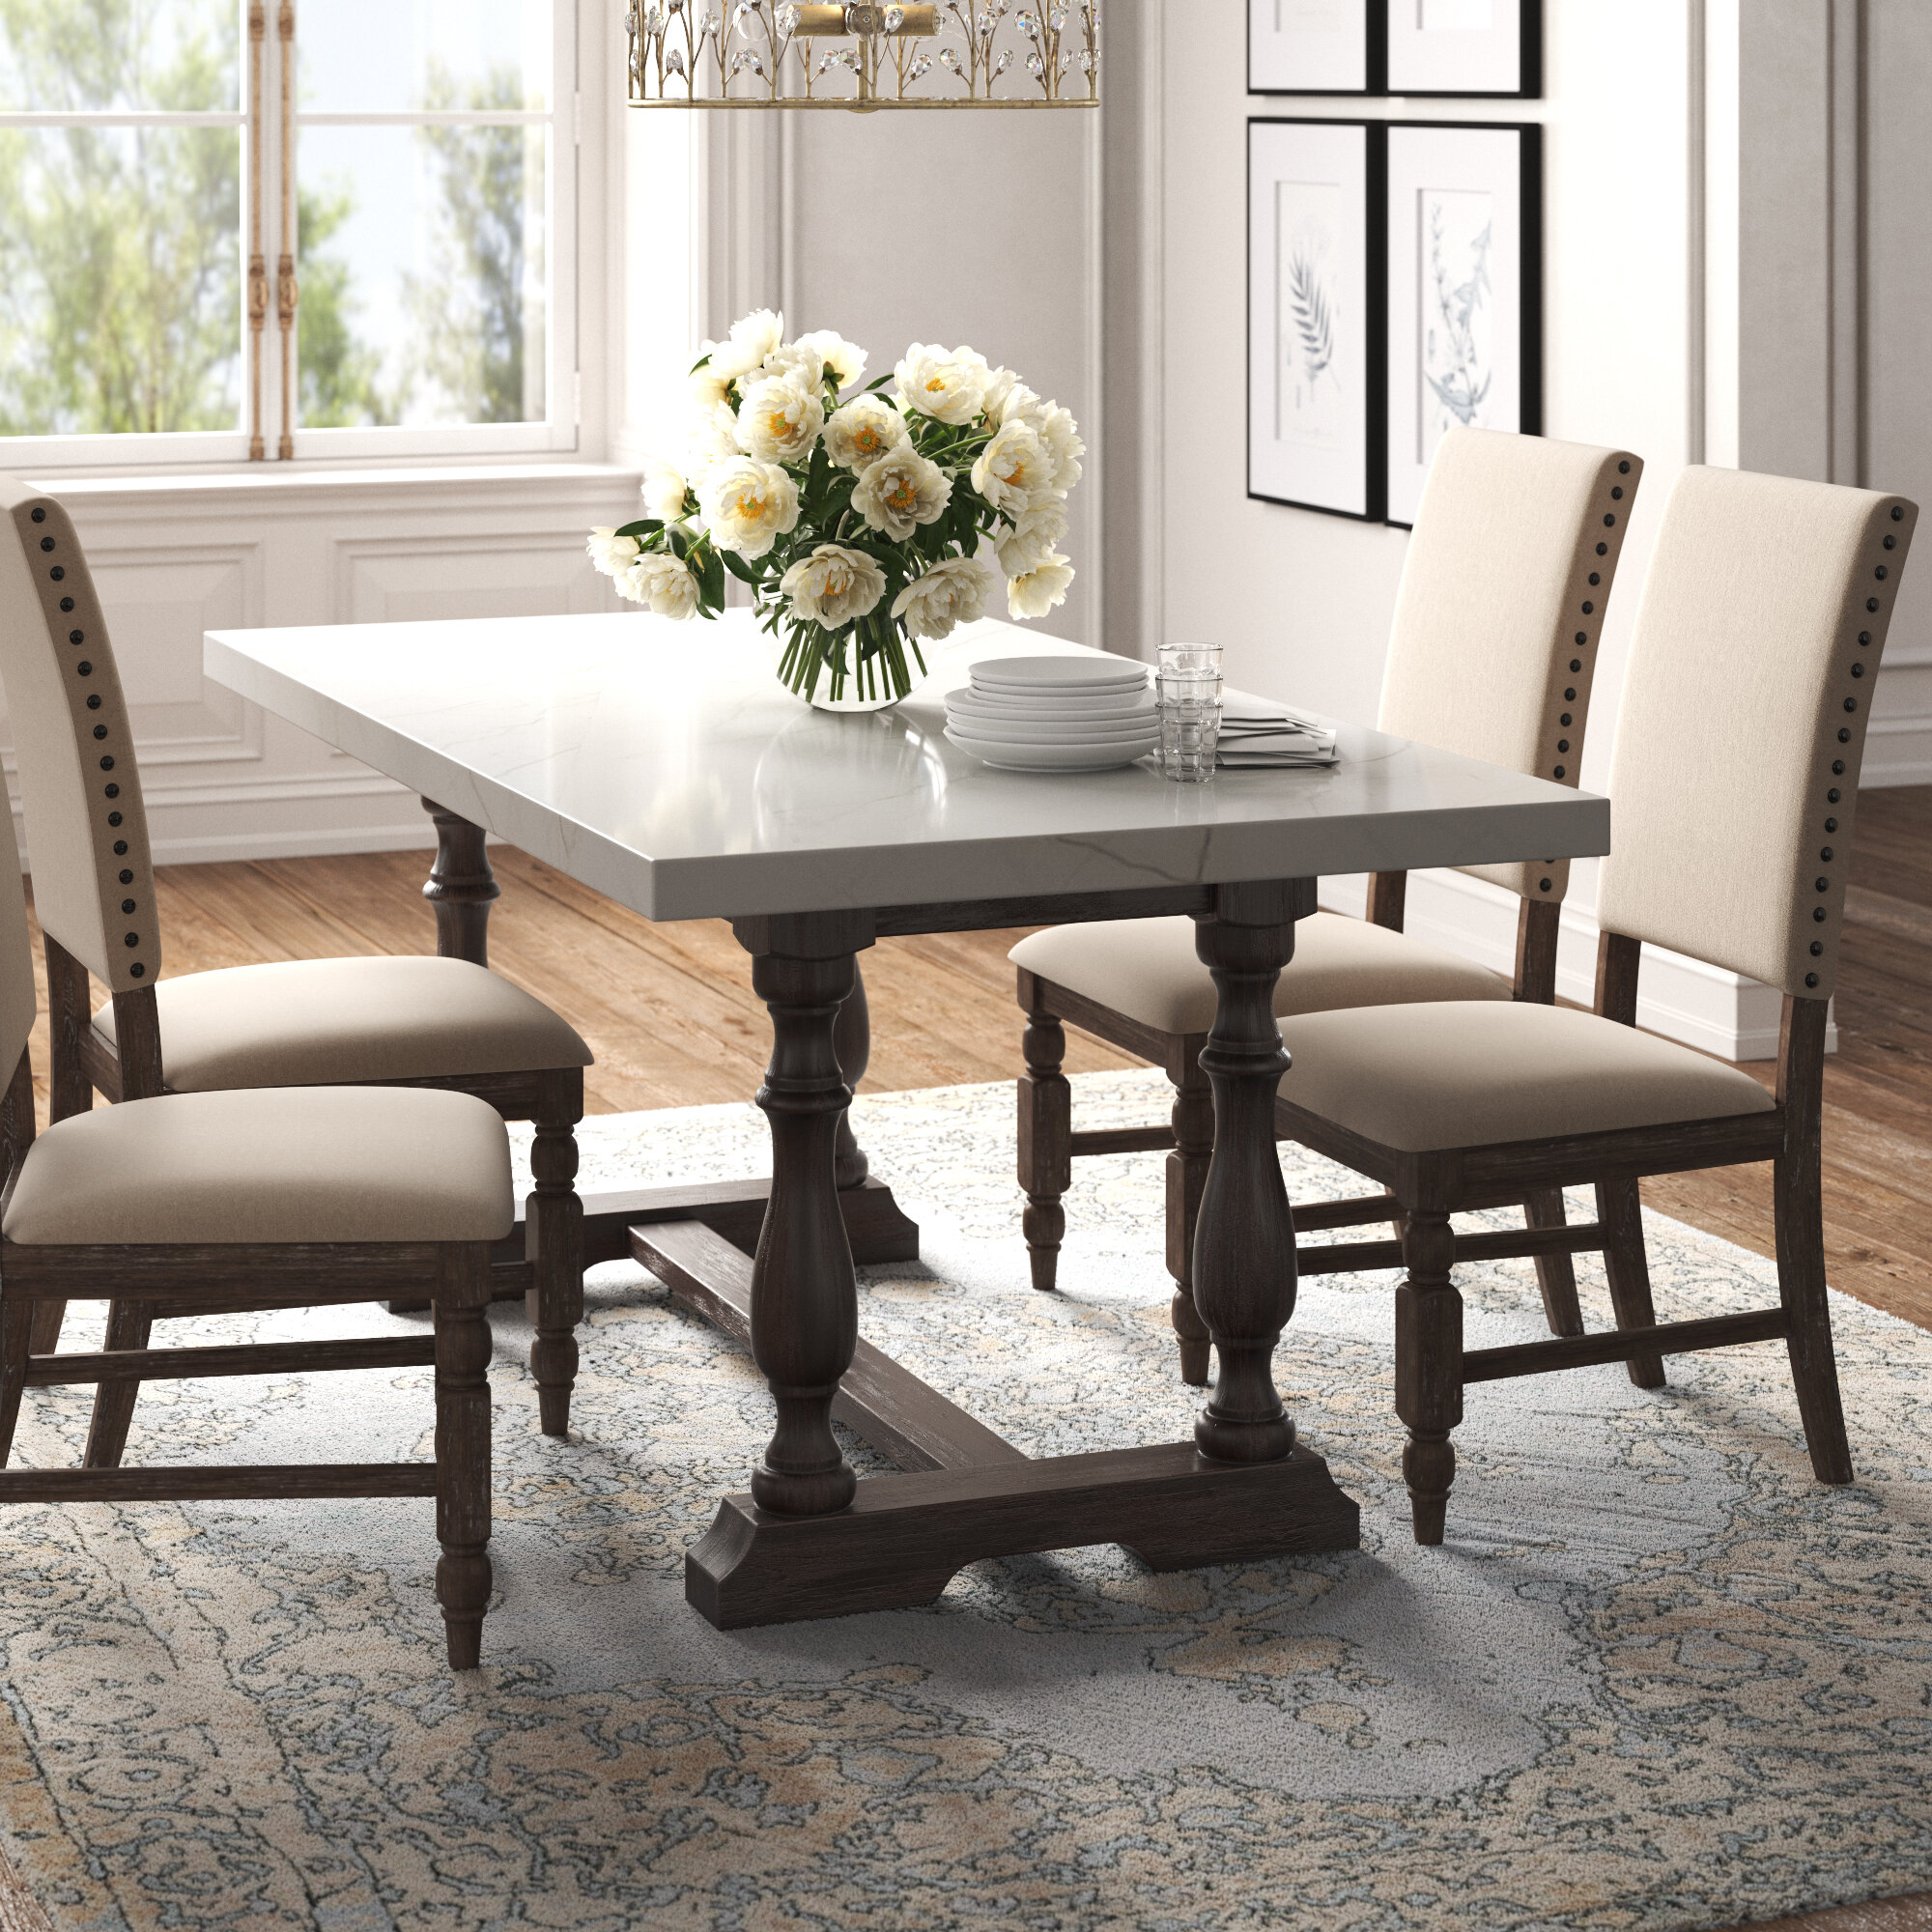 Marble Trestle Kitchen Dining Tables You Ll Love In 2021 Wayfair